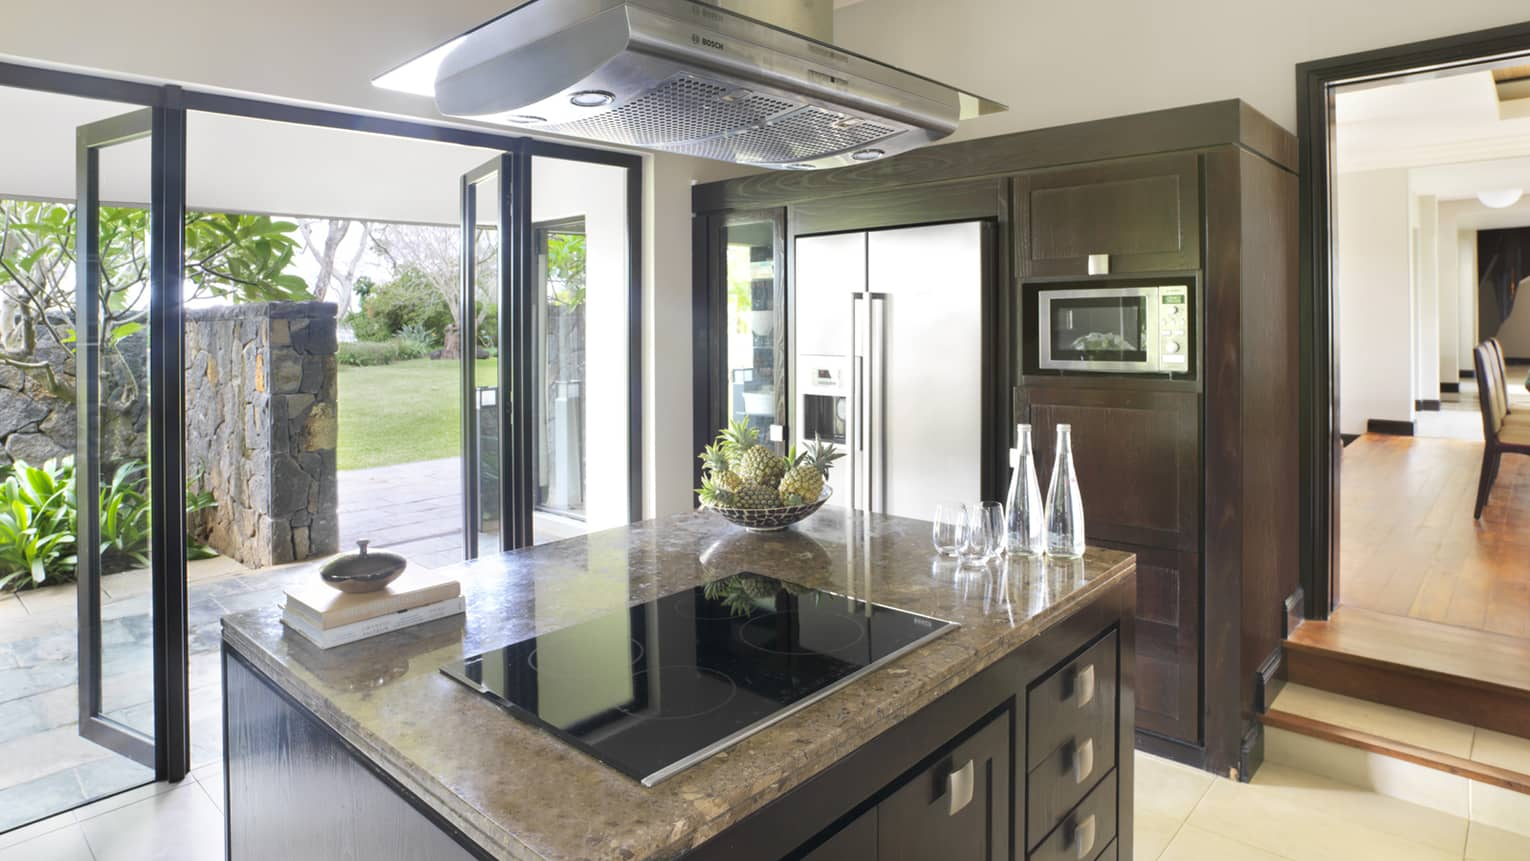 Stove range on marble island in modern kitchen, open glass walls to patio